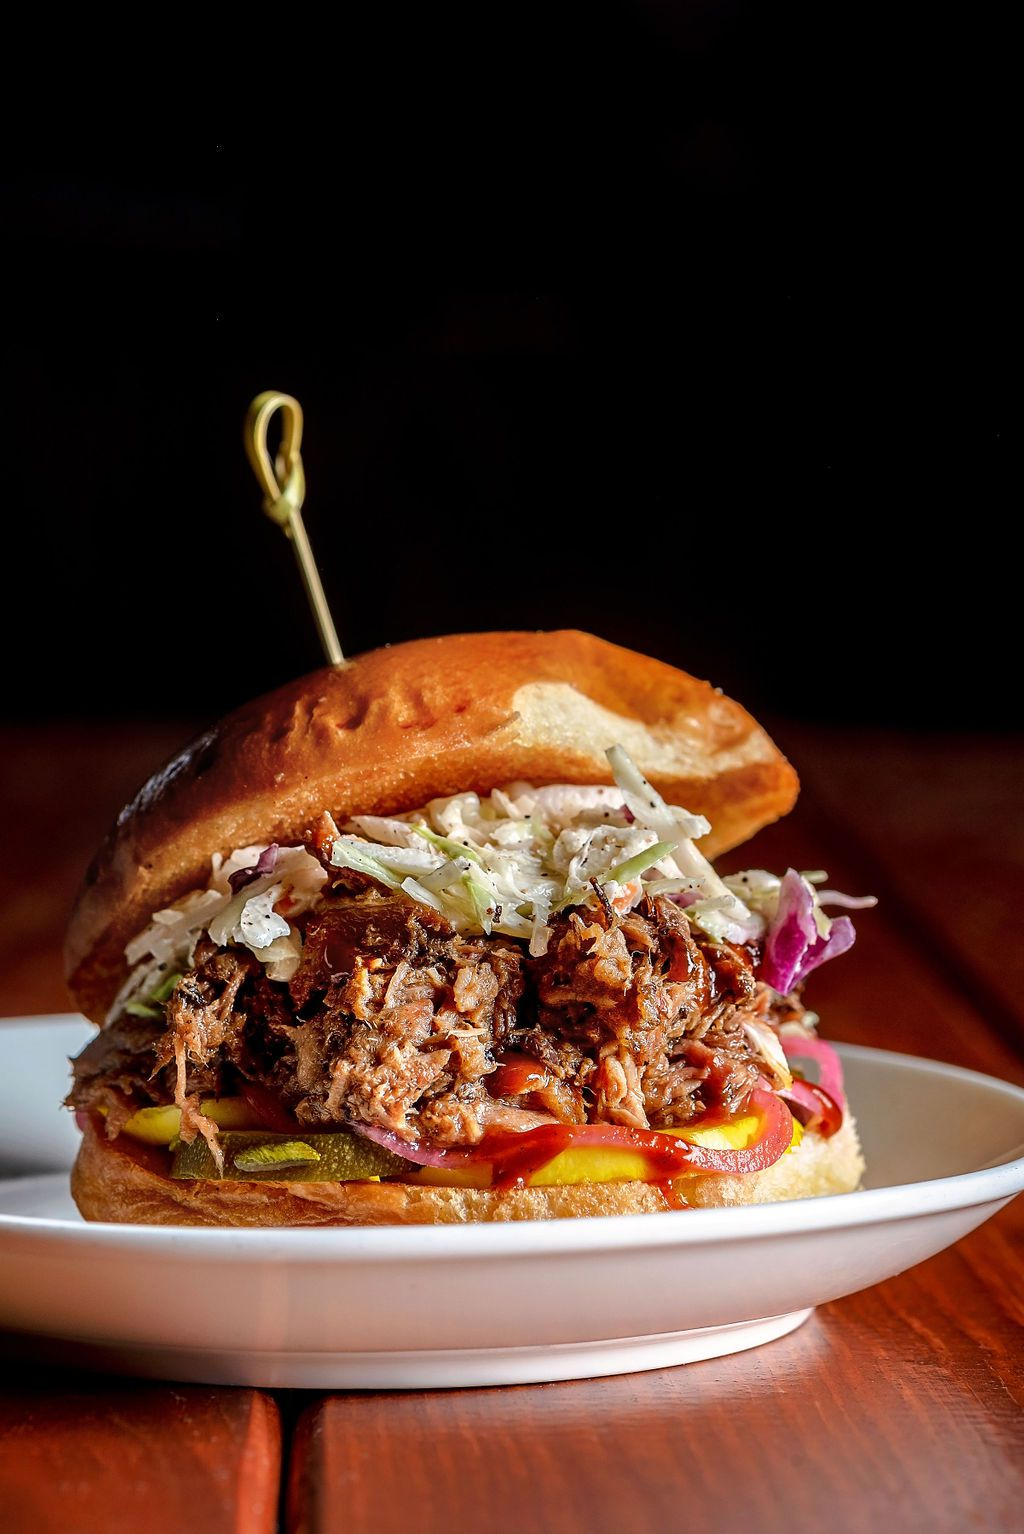 A North Carolina-style pulled pork sandwich from Money Muscle BBQ